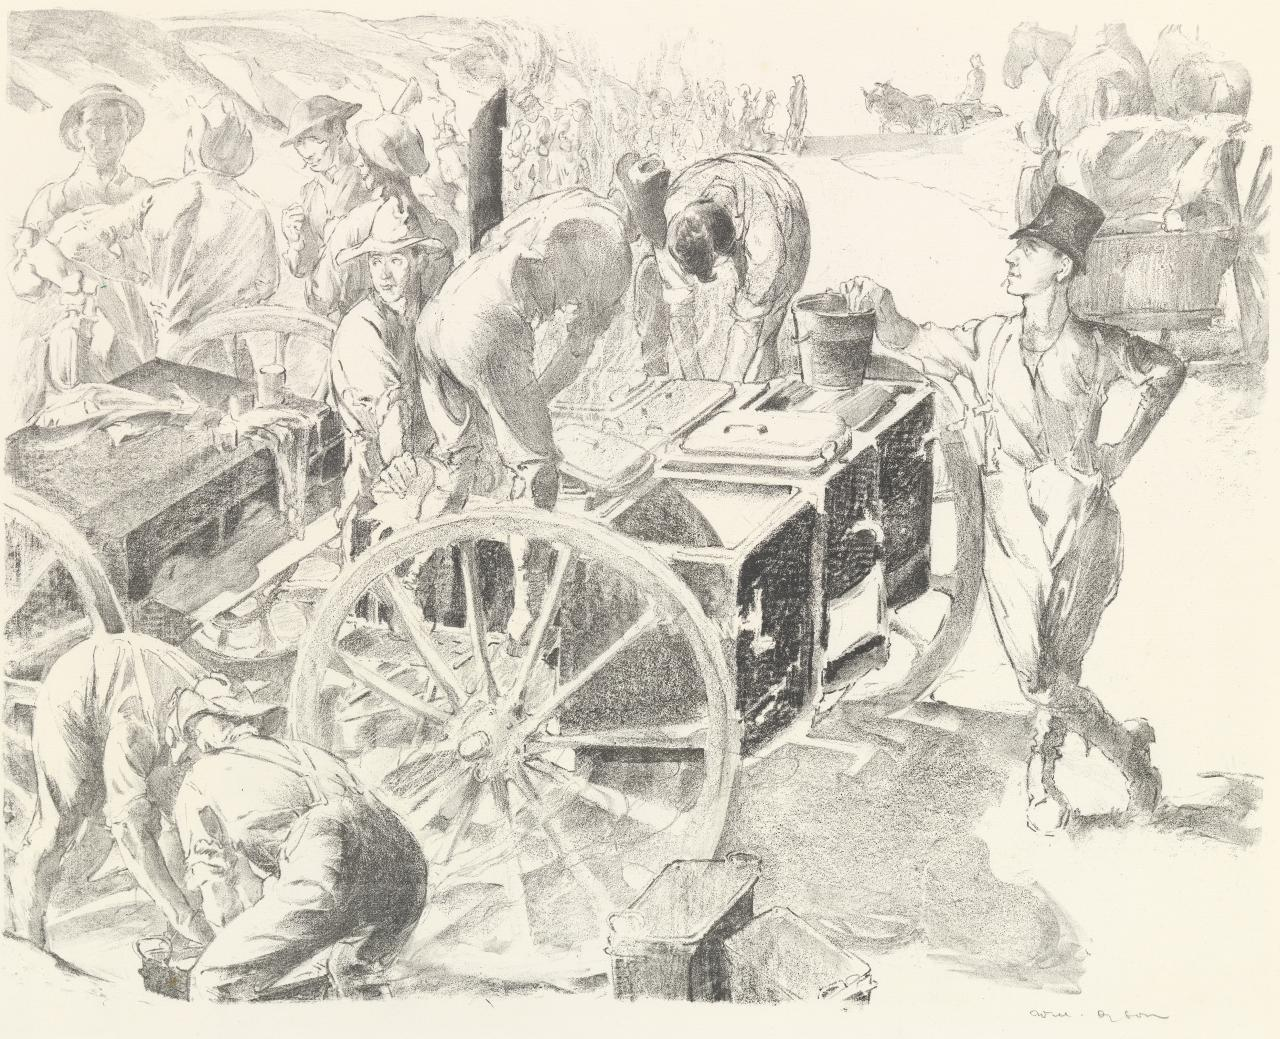 The cookers near Villers-Bretonneux